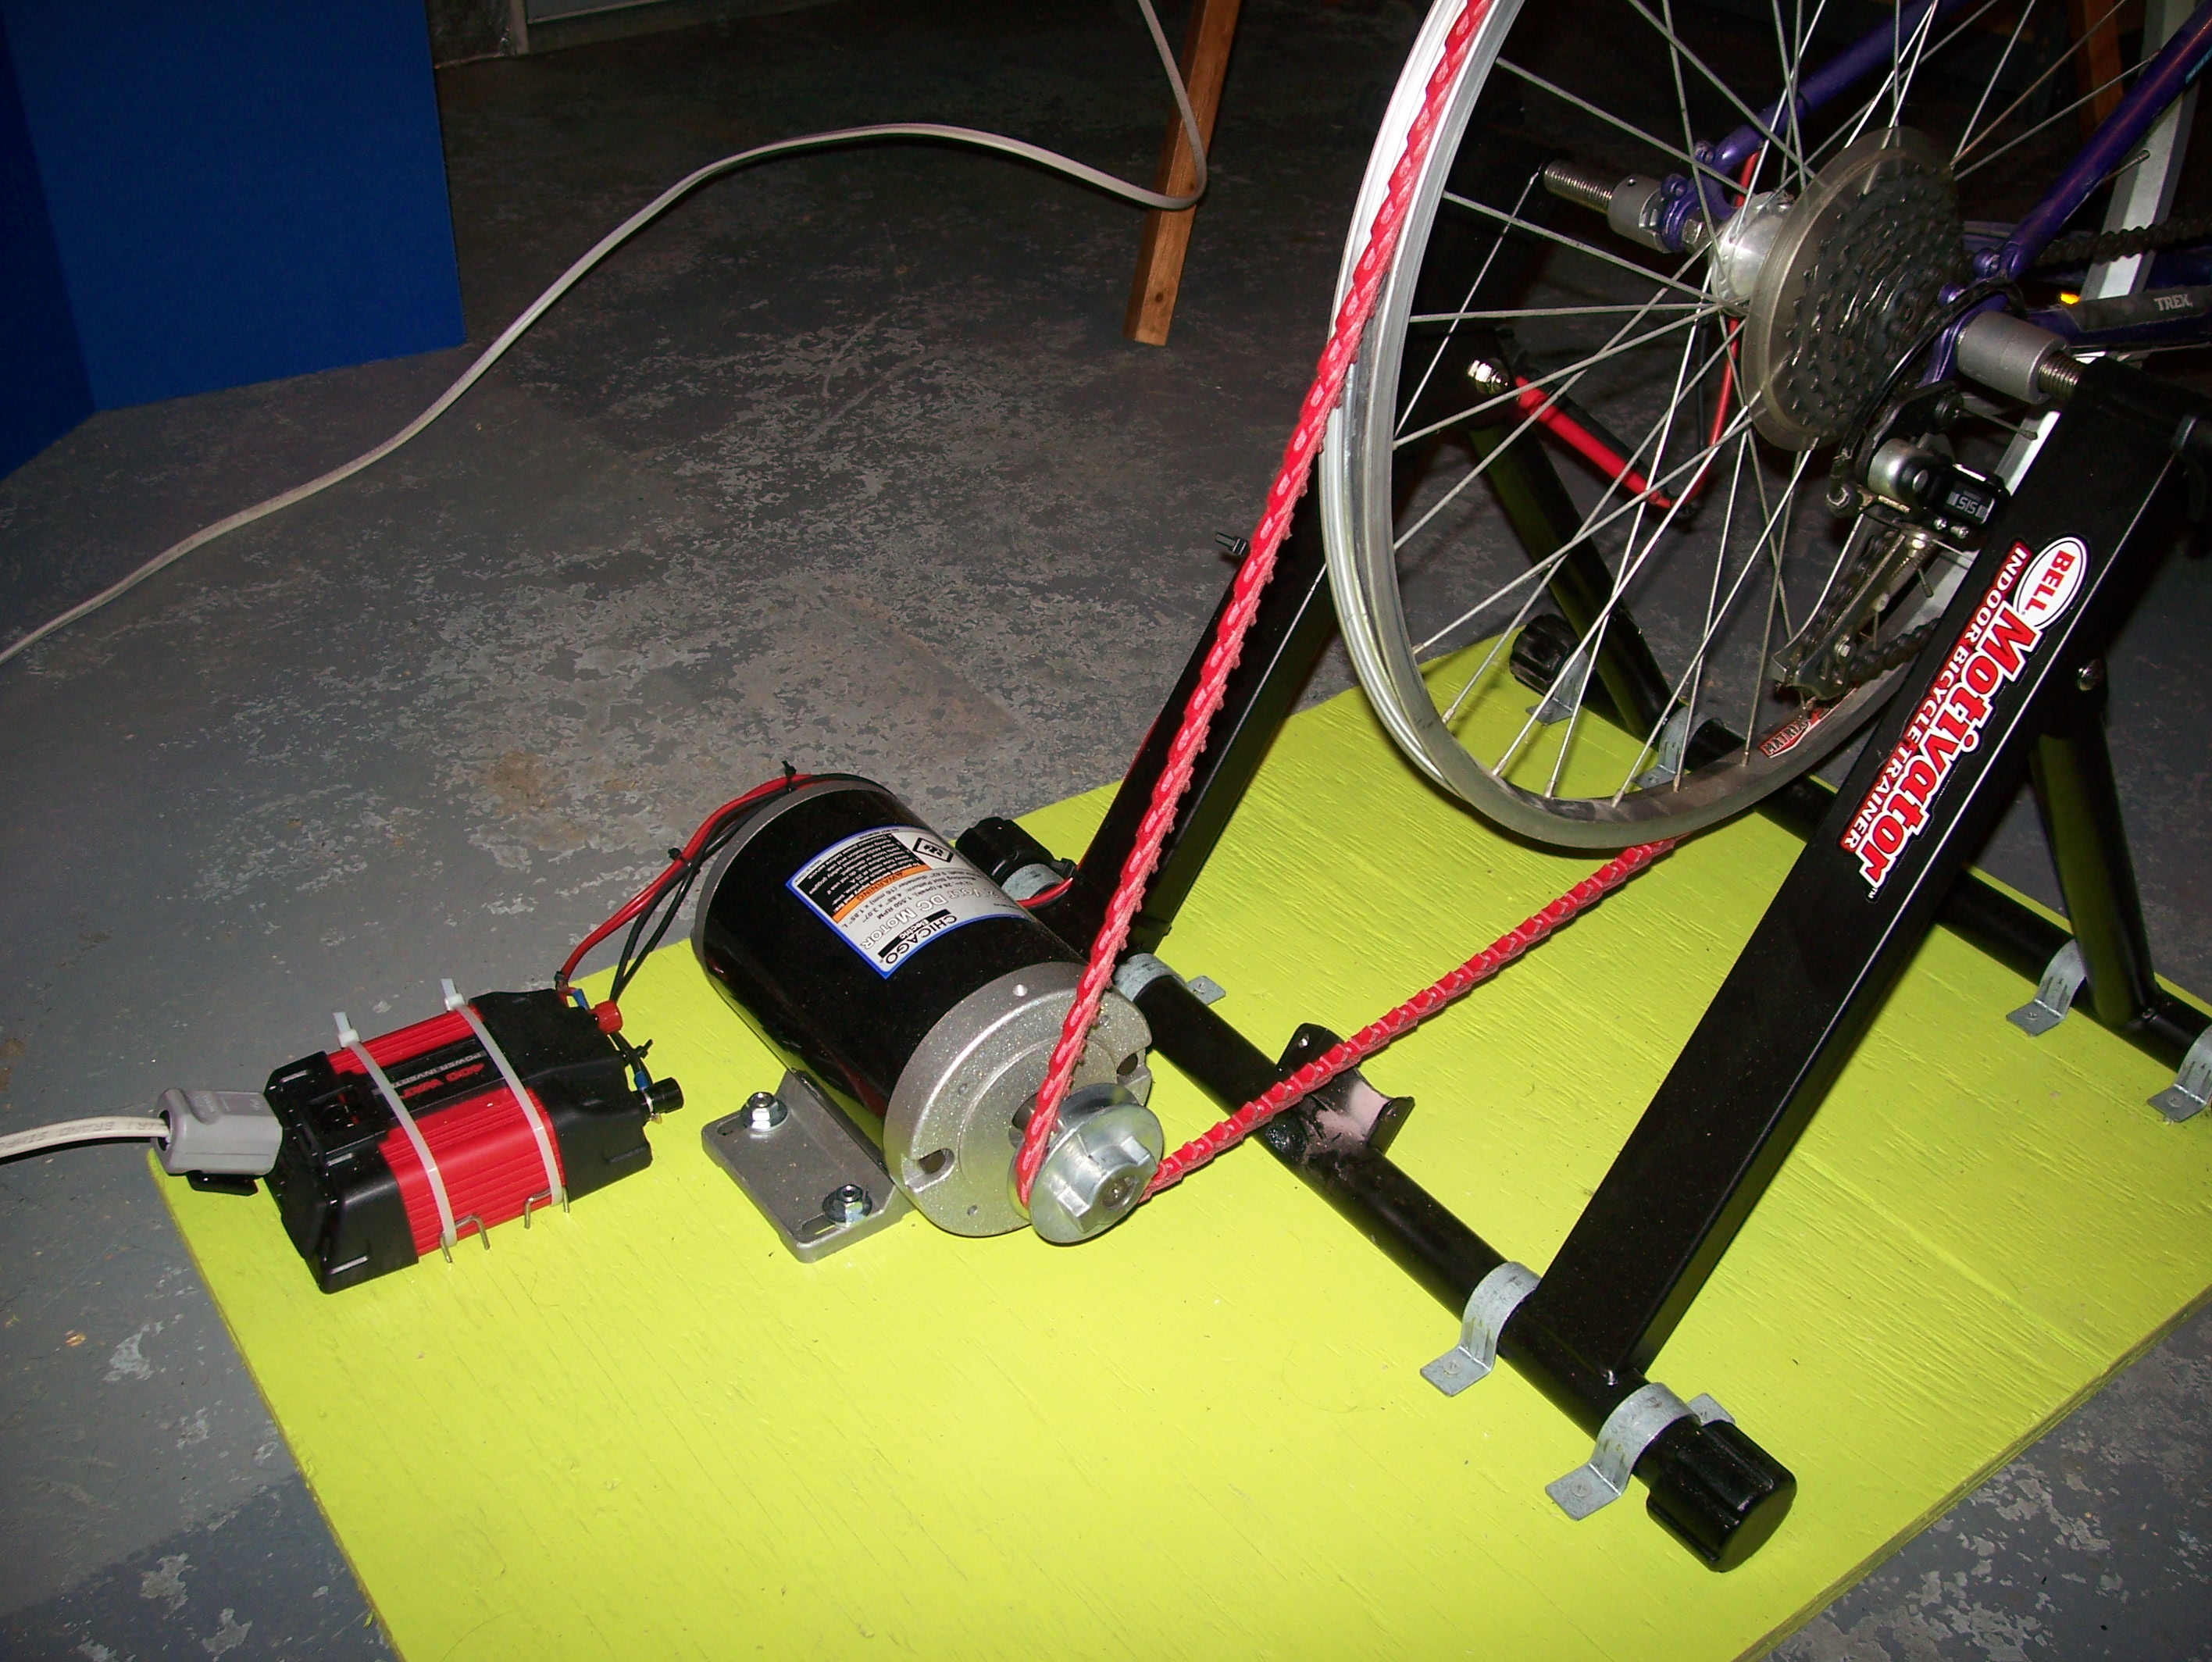 pedal dynamo generator Reelight's neo bike lights promise an easy-to-mount friction-free generator for a virtually endless energy source.